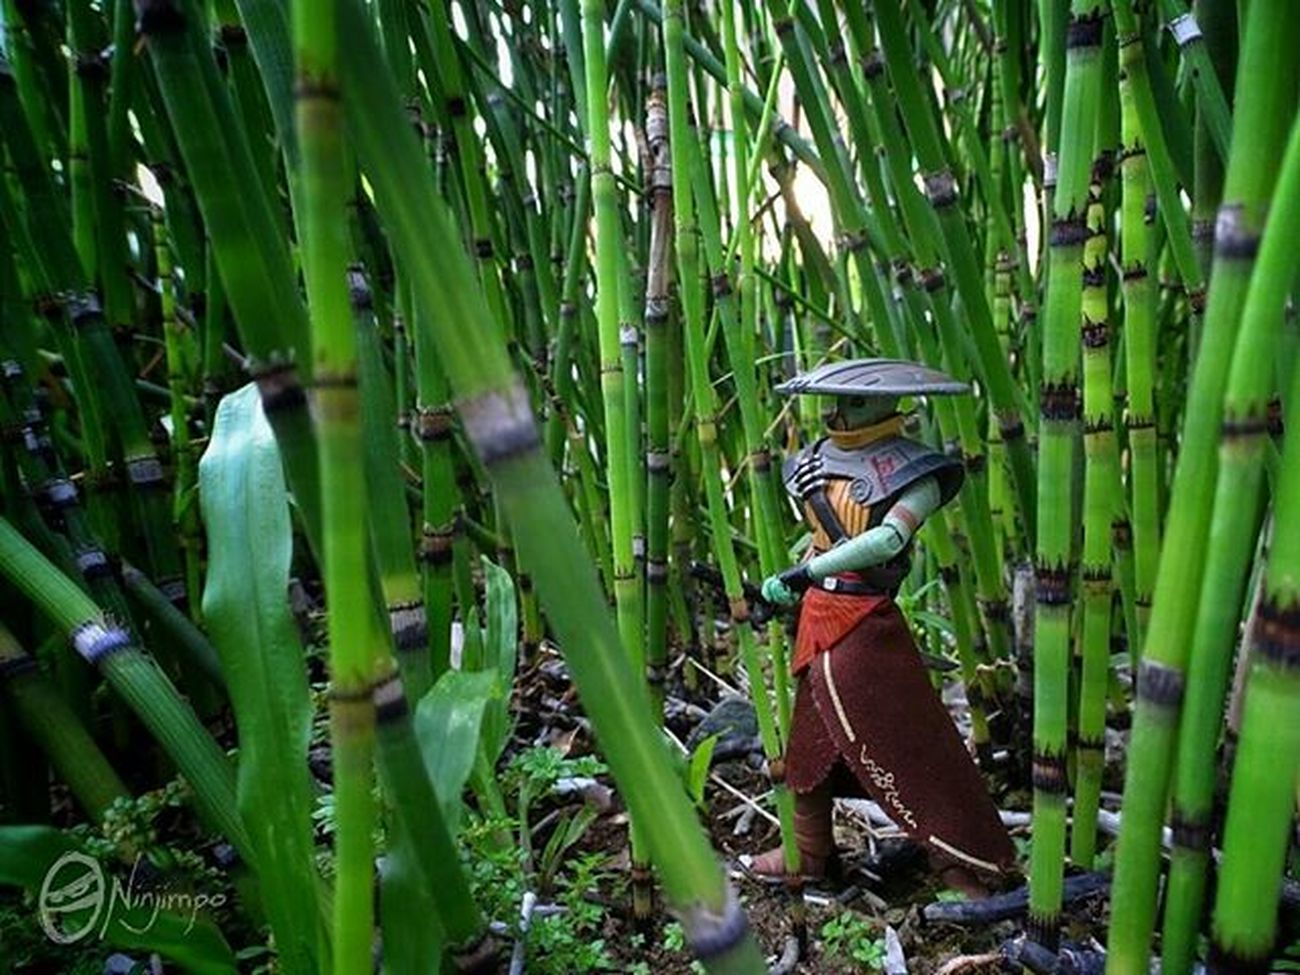 The Ronin of the Bamboo Forest. Afaa AfaaNinjimpo Embo Starwars Bountyhunter Theclonewars Tcw Starwarstheclonewars Starwarstoyphotography Epictoyart Toyspot Toyspotcollector Toptoyphotos Toyartistry Toygroup_alliance Tytoń Toydiscovery Toycrewbuddies Toyphotography